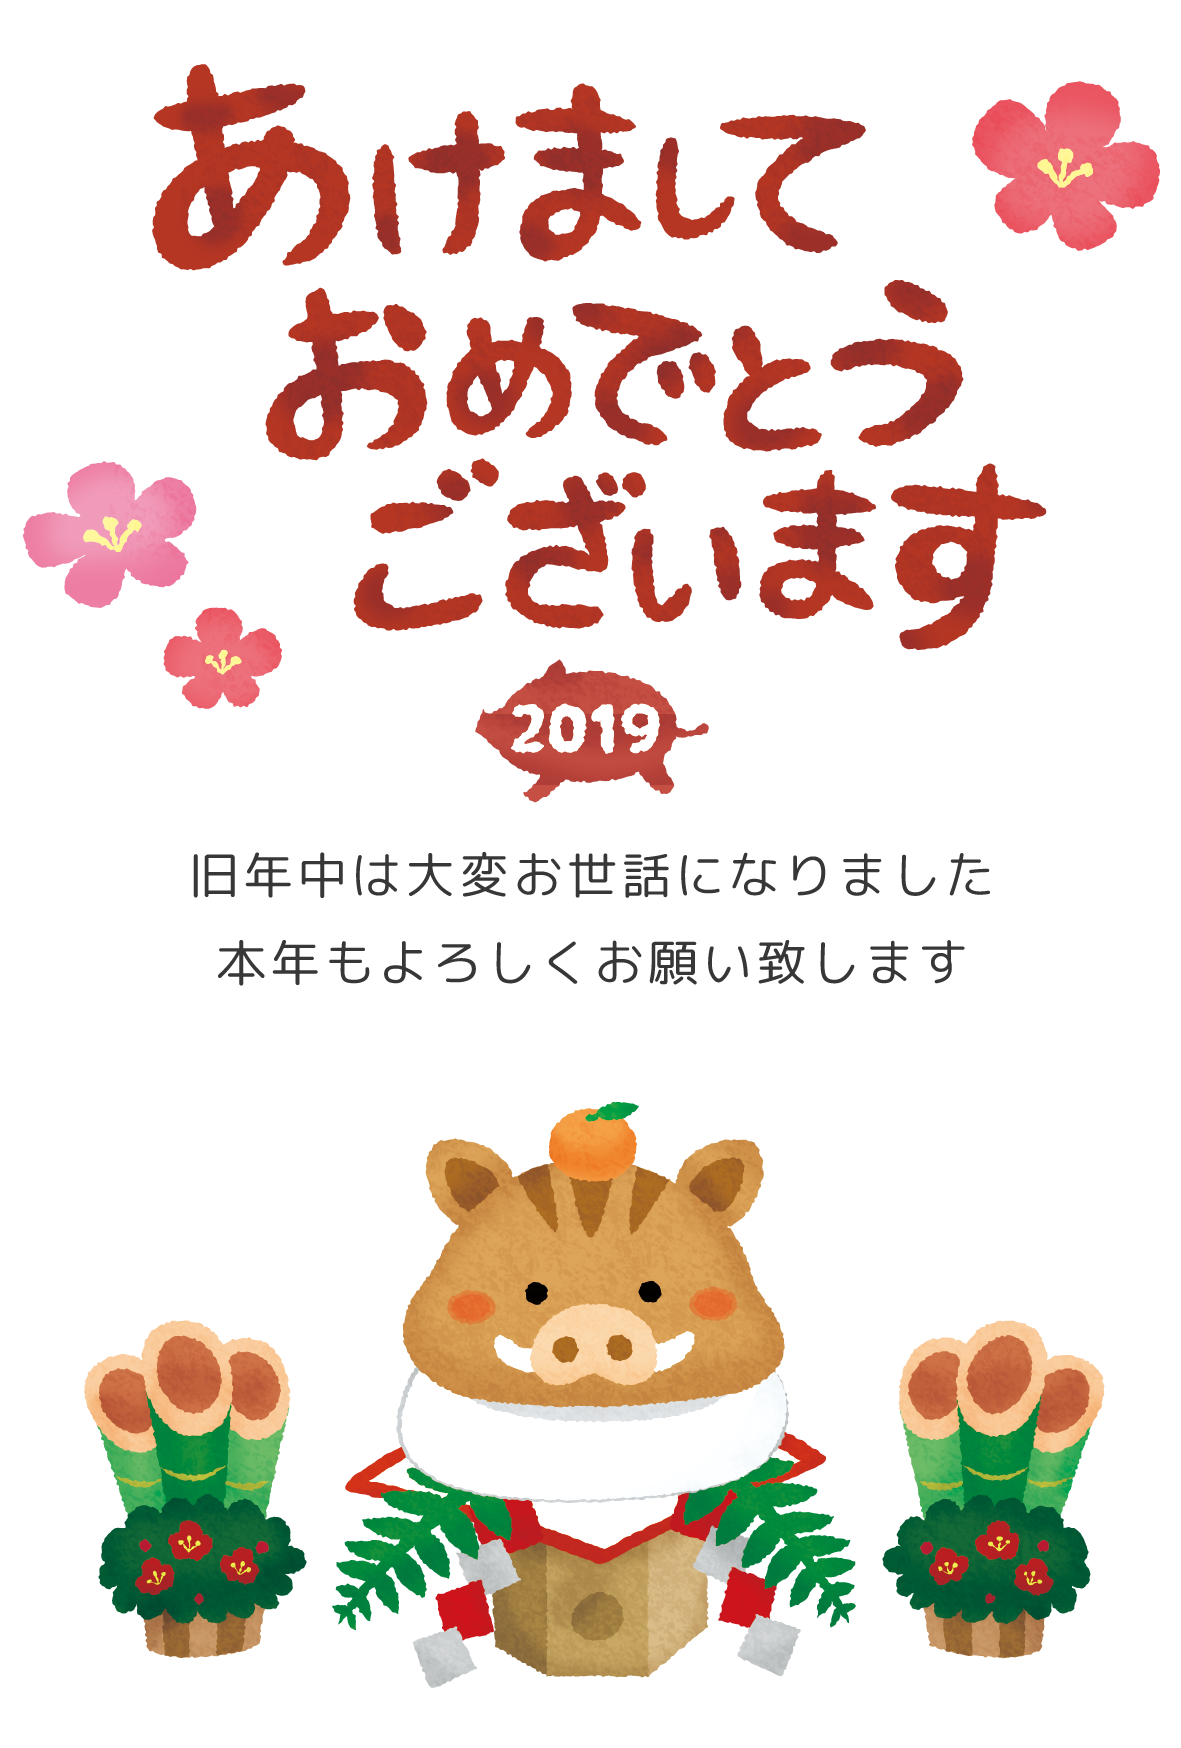 New Year's Card Free Template (Boar kagami mochi)